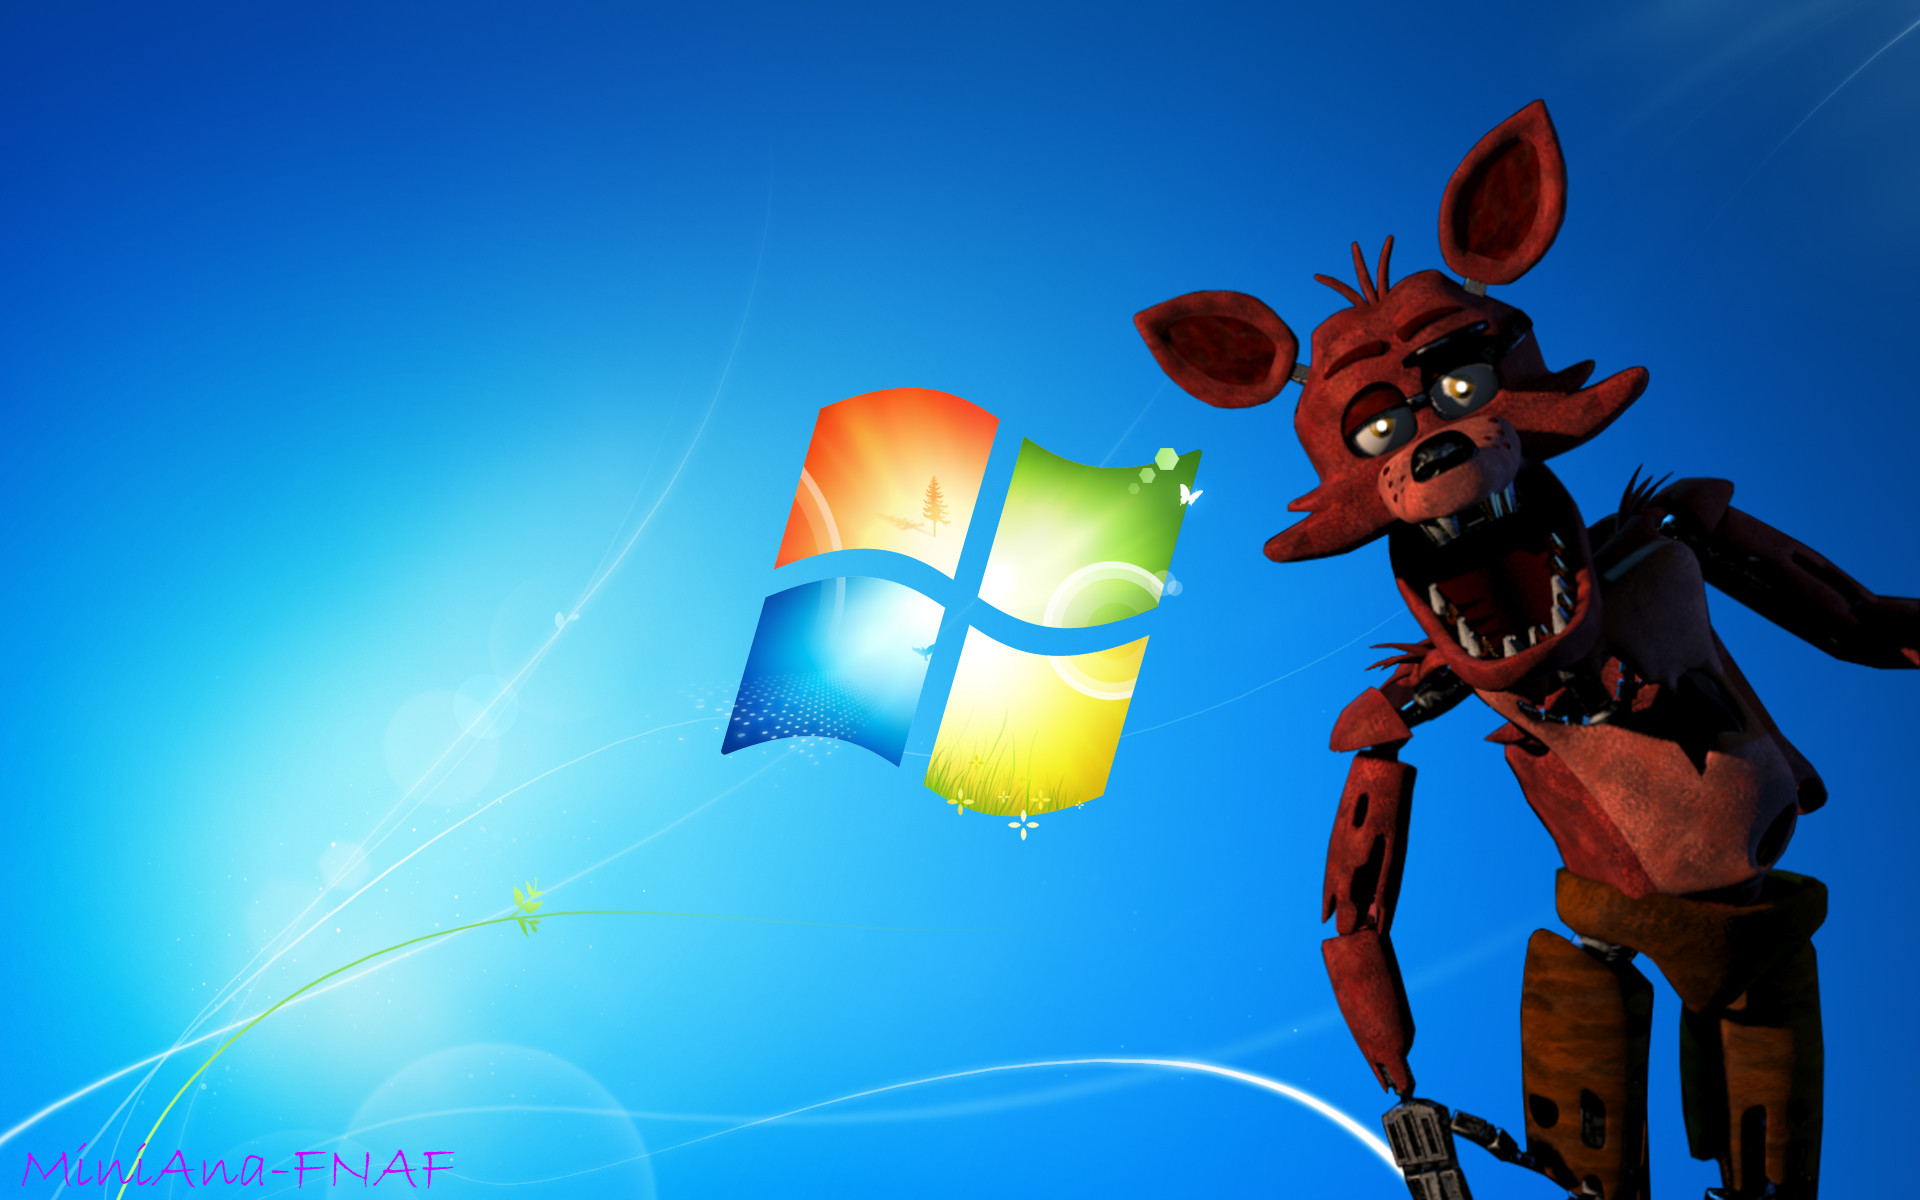 1920x1200 FNAF WALLPAER-Foxy the fox Windows 7 by MiniAna-Fnaf on .